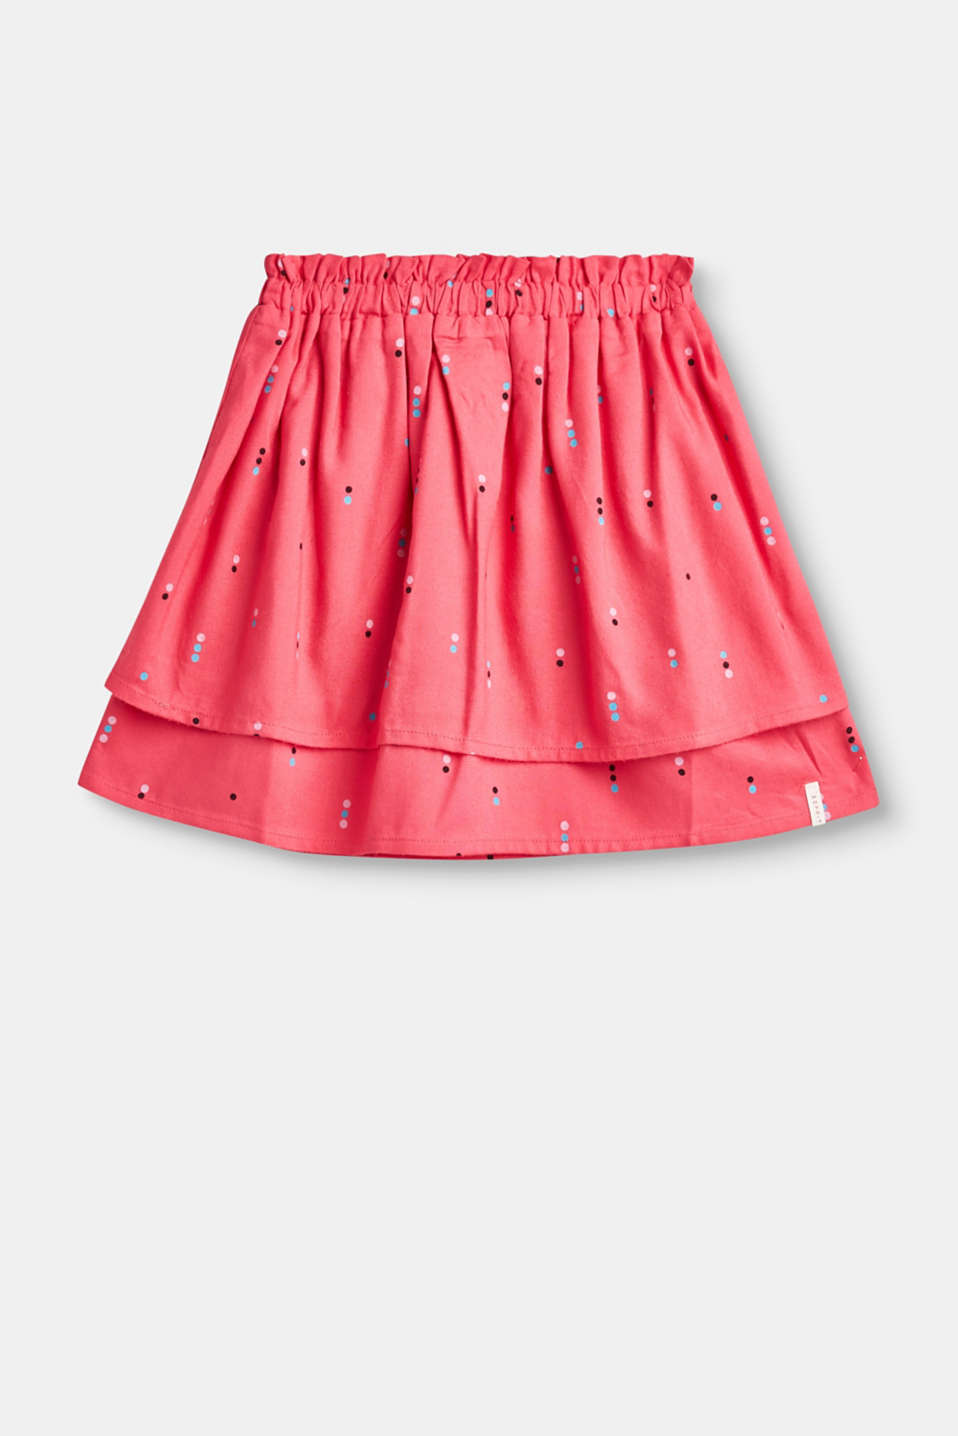 Esprit - Flared skirt with a polka dot print